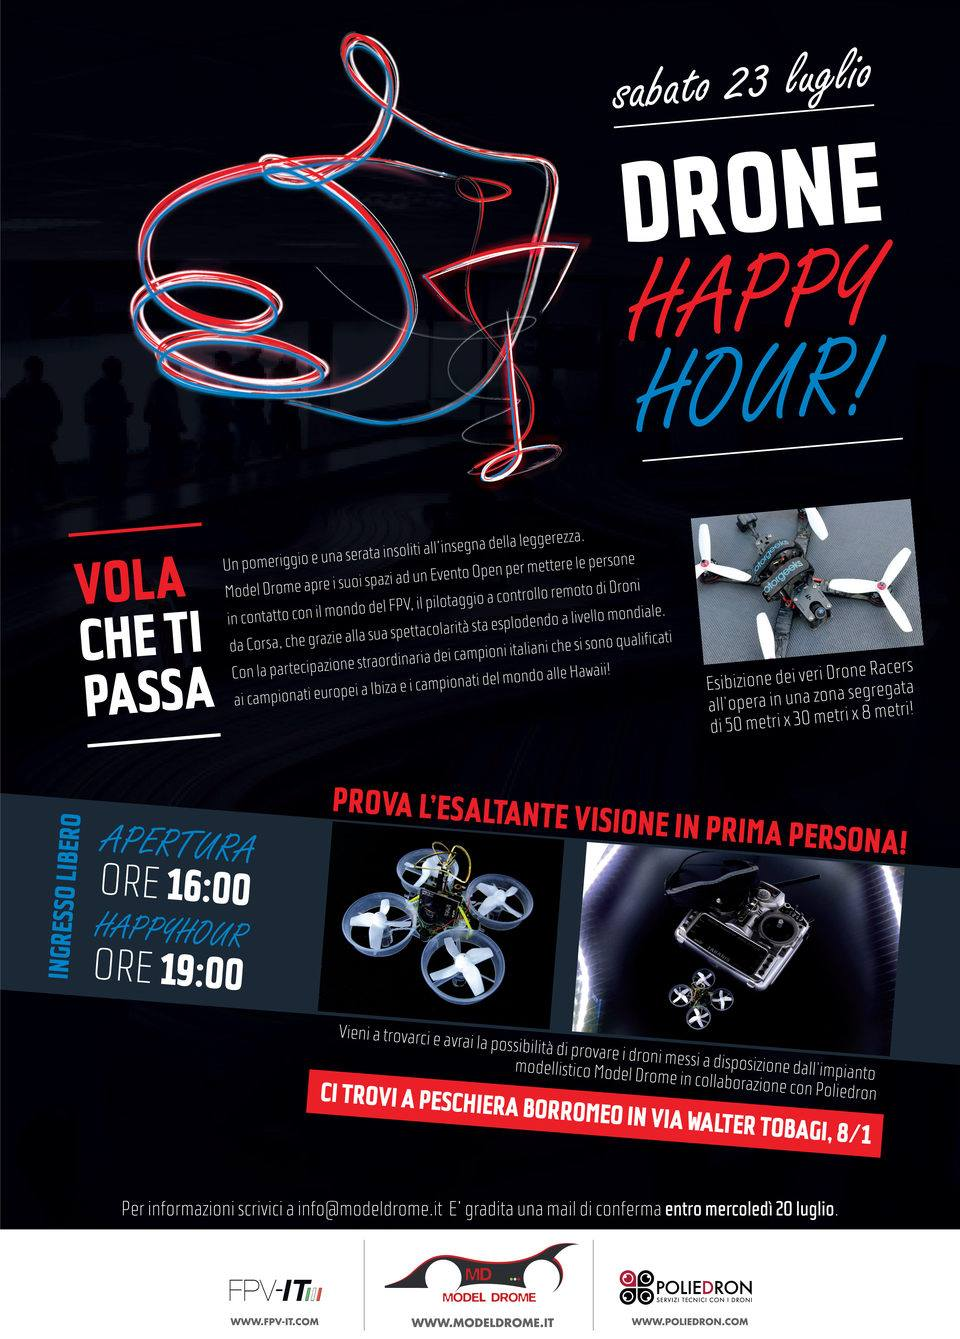 Drone Happy Hour